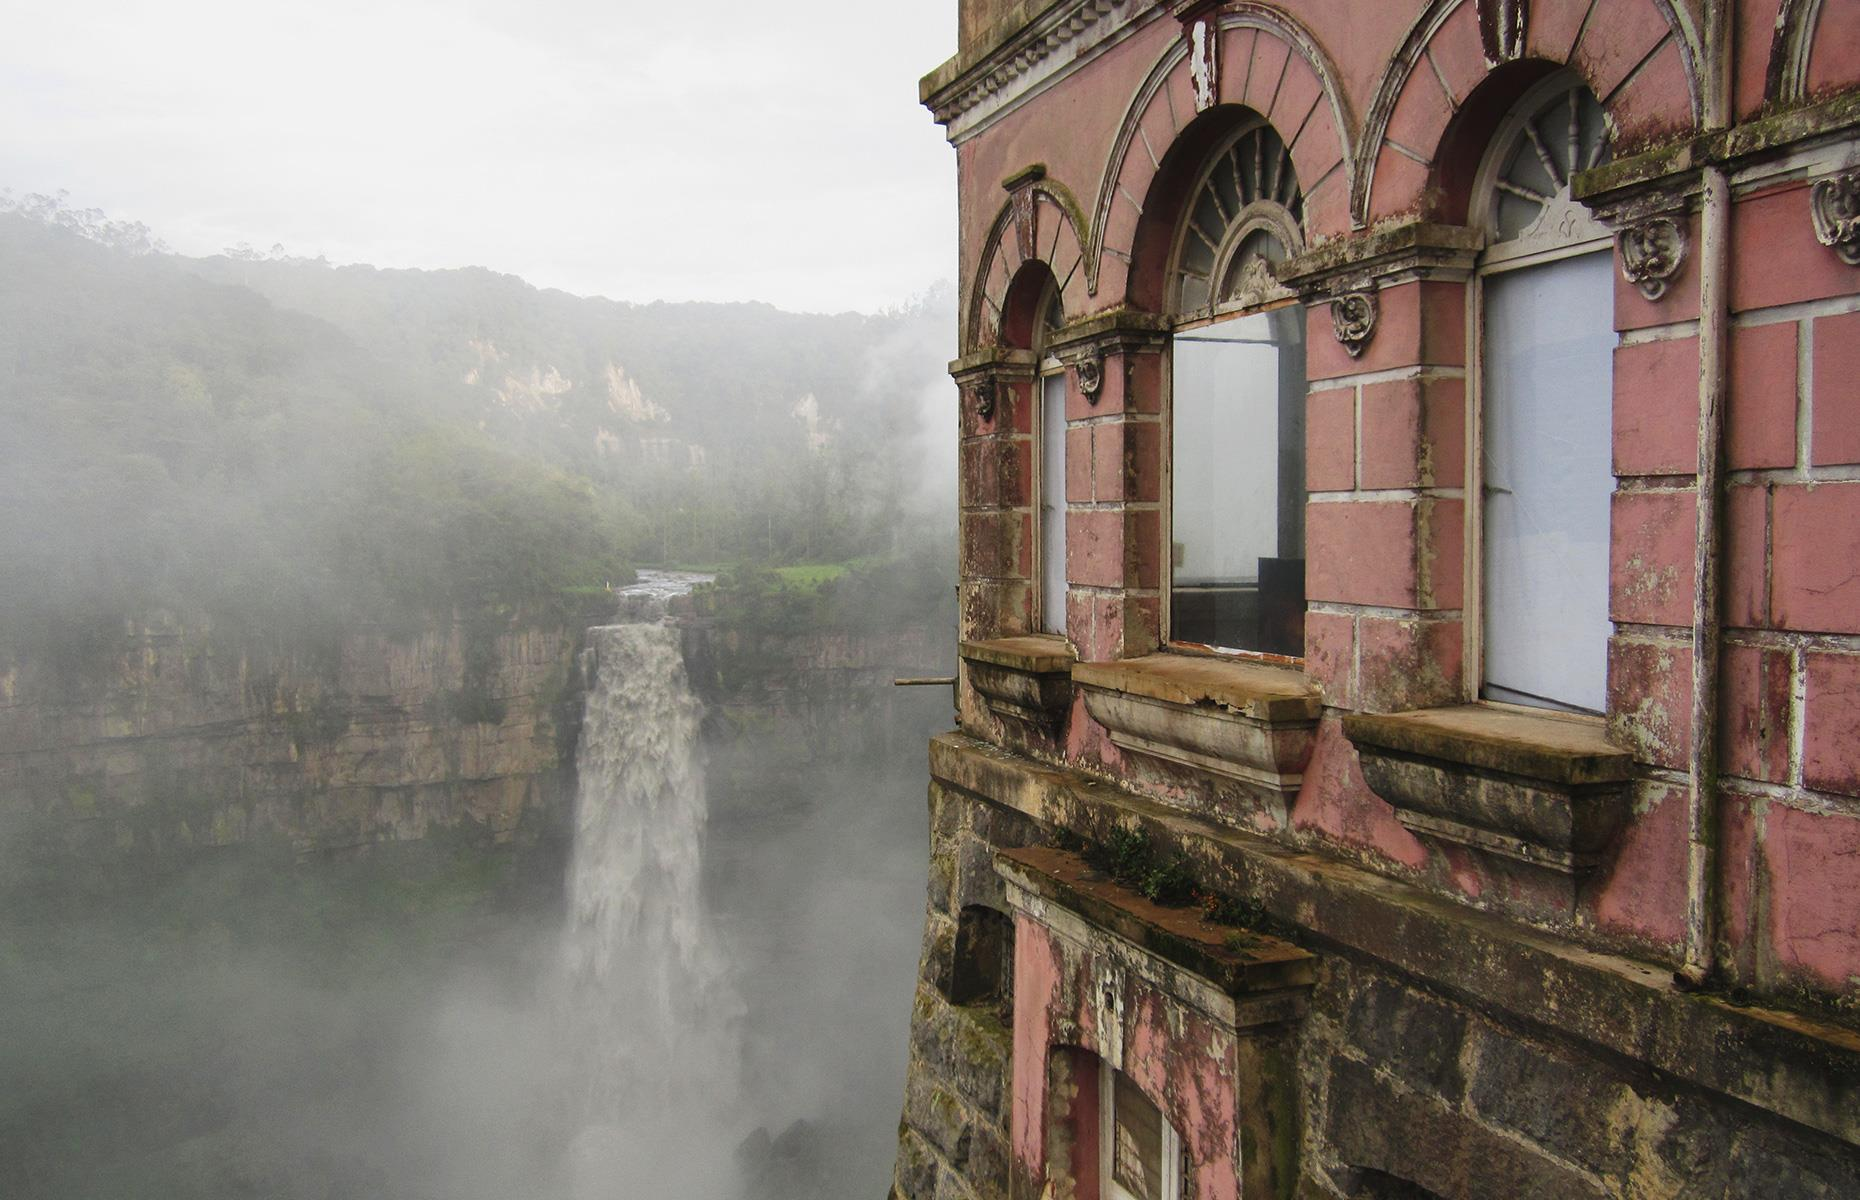 Slide 3 of 70: But as the Bogotá river got increasingly contaminated with sewage and other liquid waste, the tourist numbers slowly dwindled. The hotel closed in the early 1990s but a museum exhibition about biodiversity was recently set up in the abandoned space.